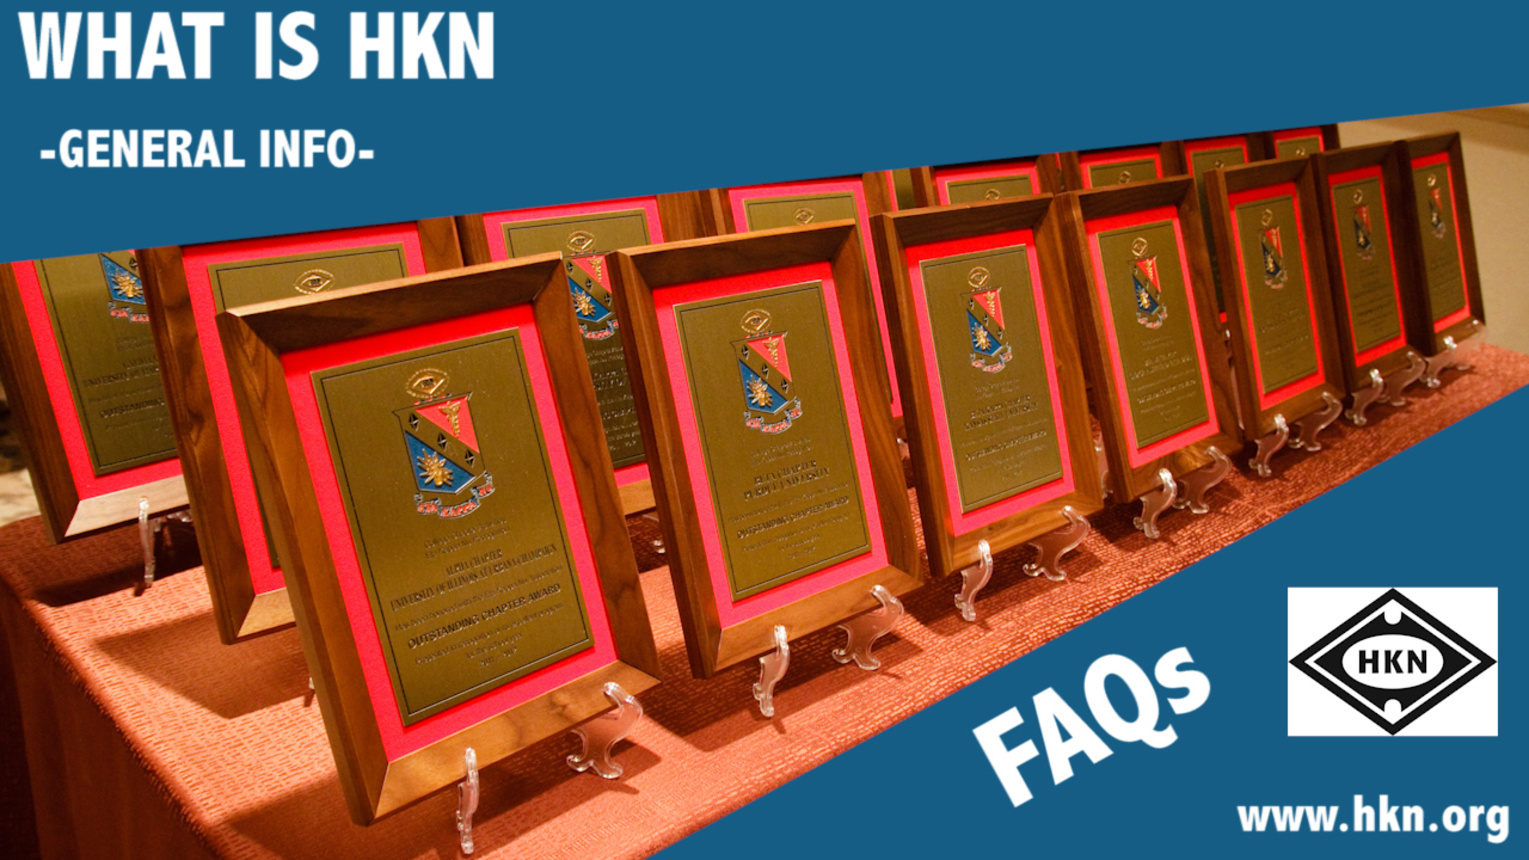 FAQs and Information: What is HKN?